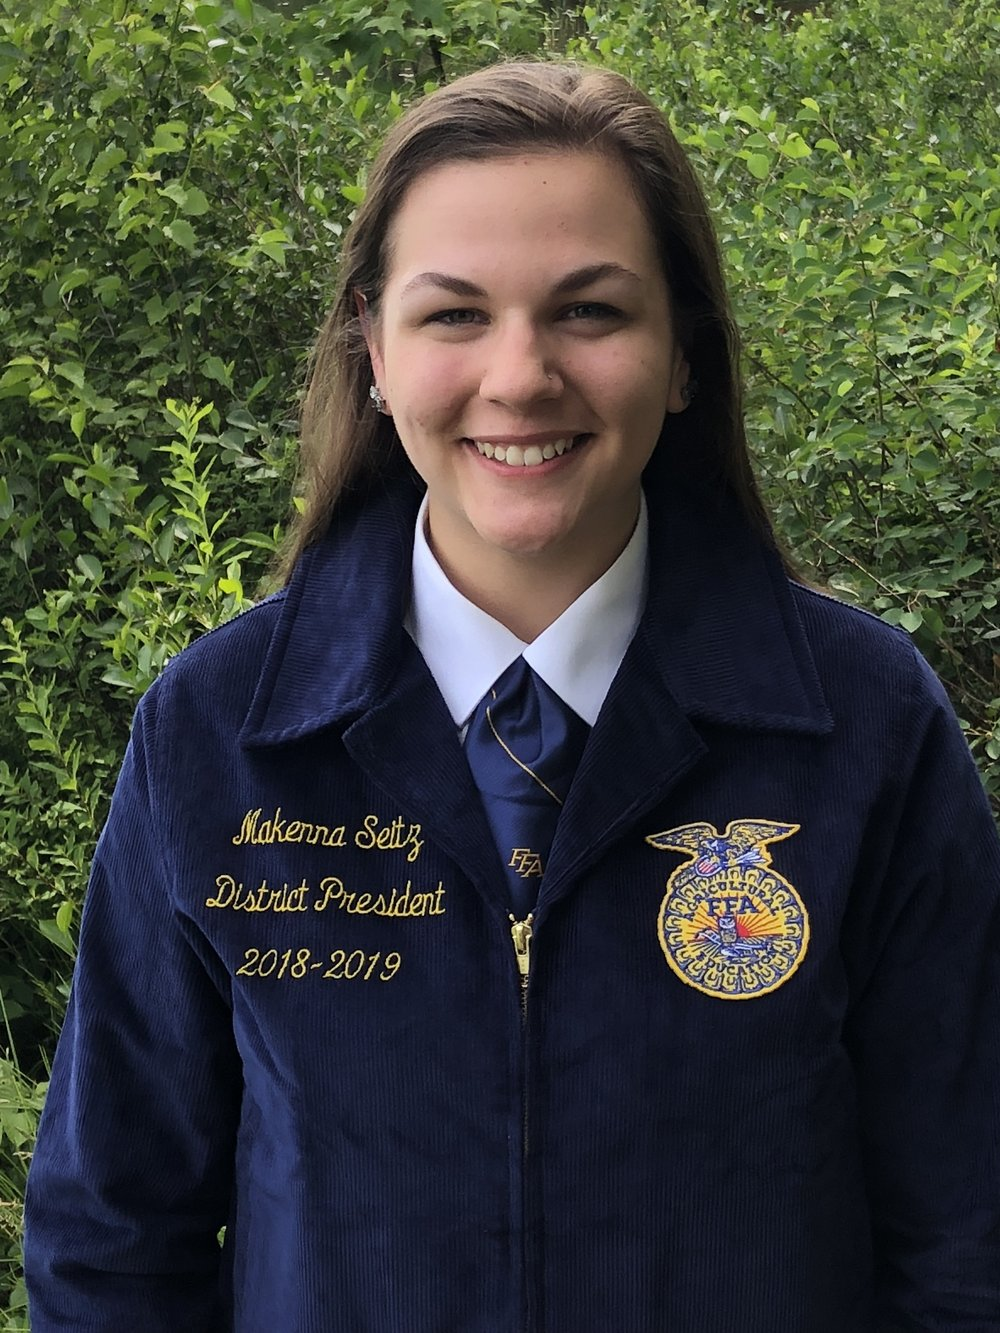 MAKENNA SEITZ DISTRICT 5 PRESIDENT VVS FFA